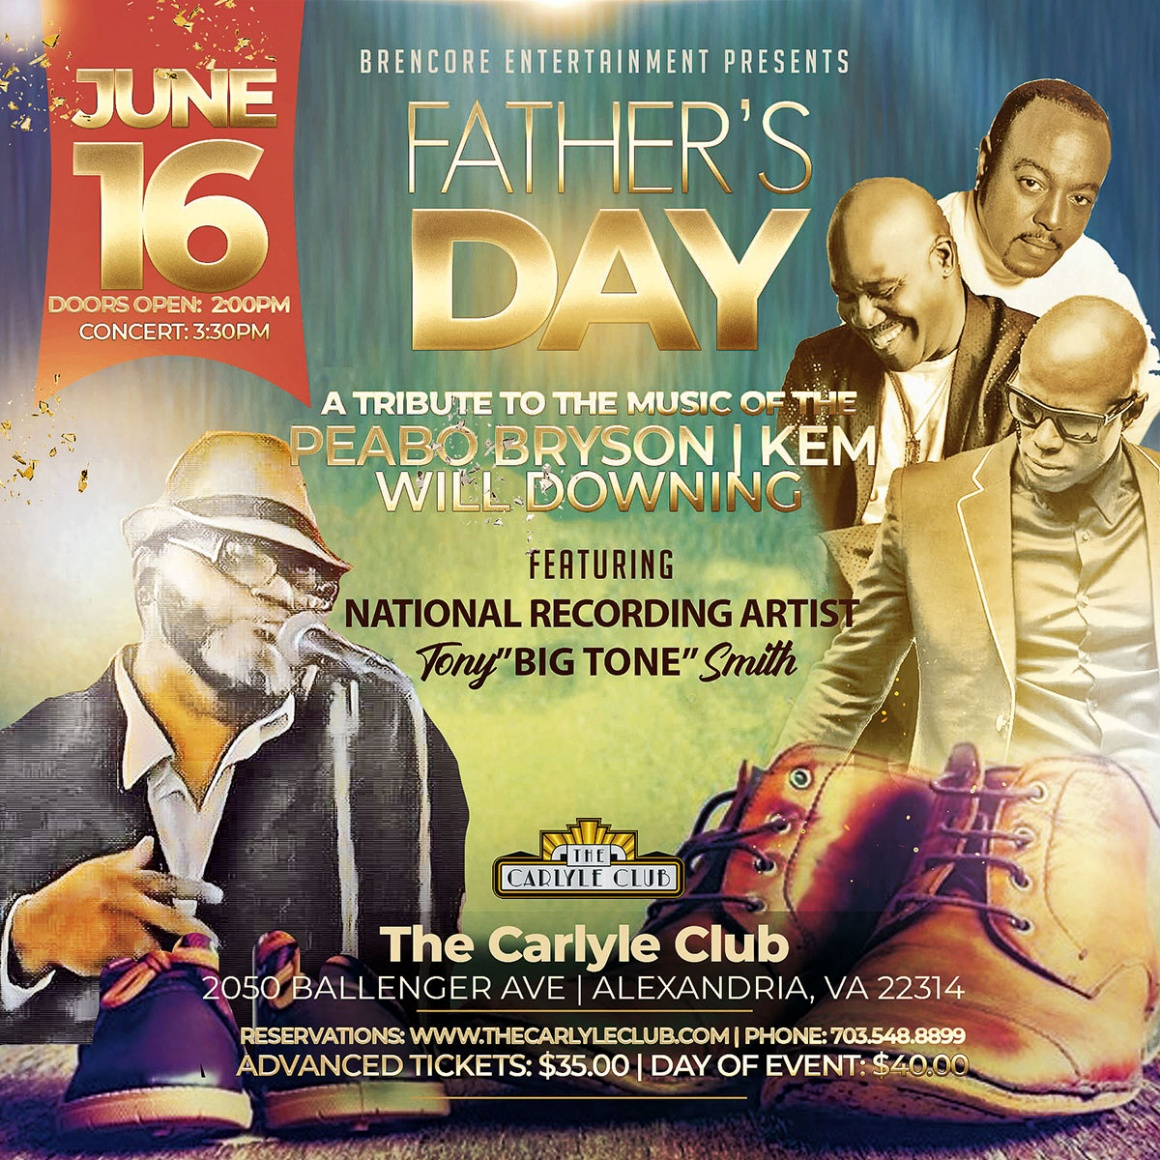 A Tribute to the music of the Peabo Bryson, Kem, Will Downing